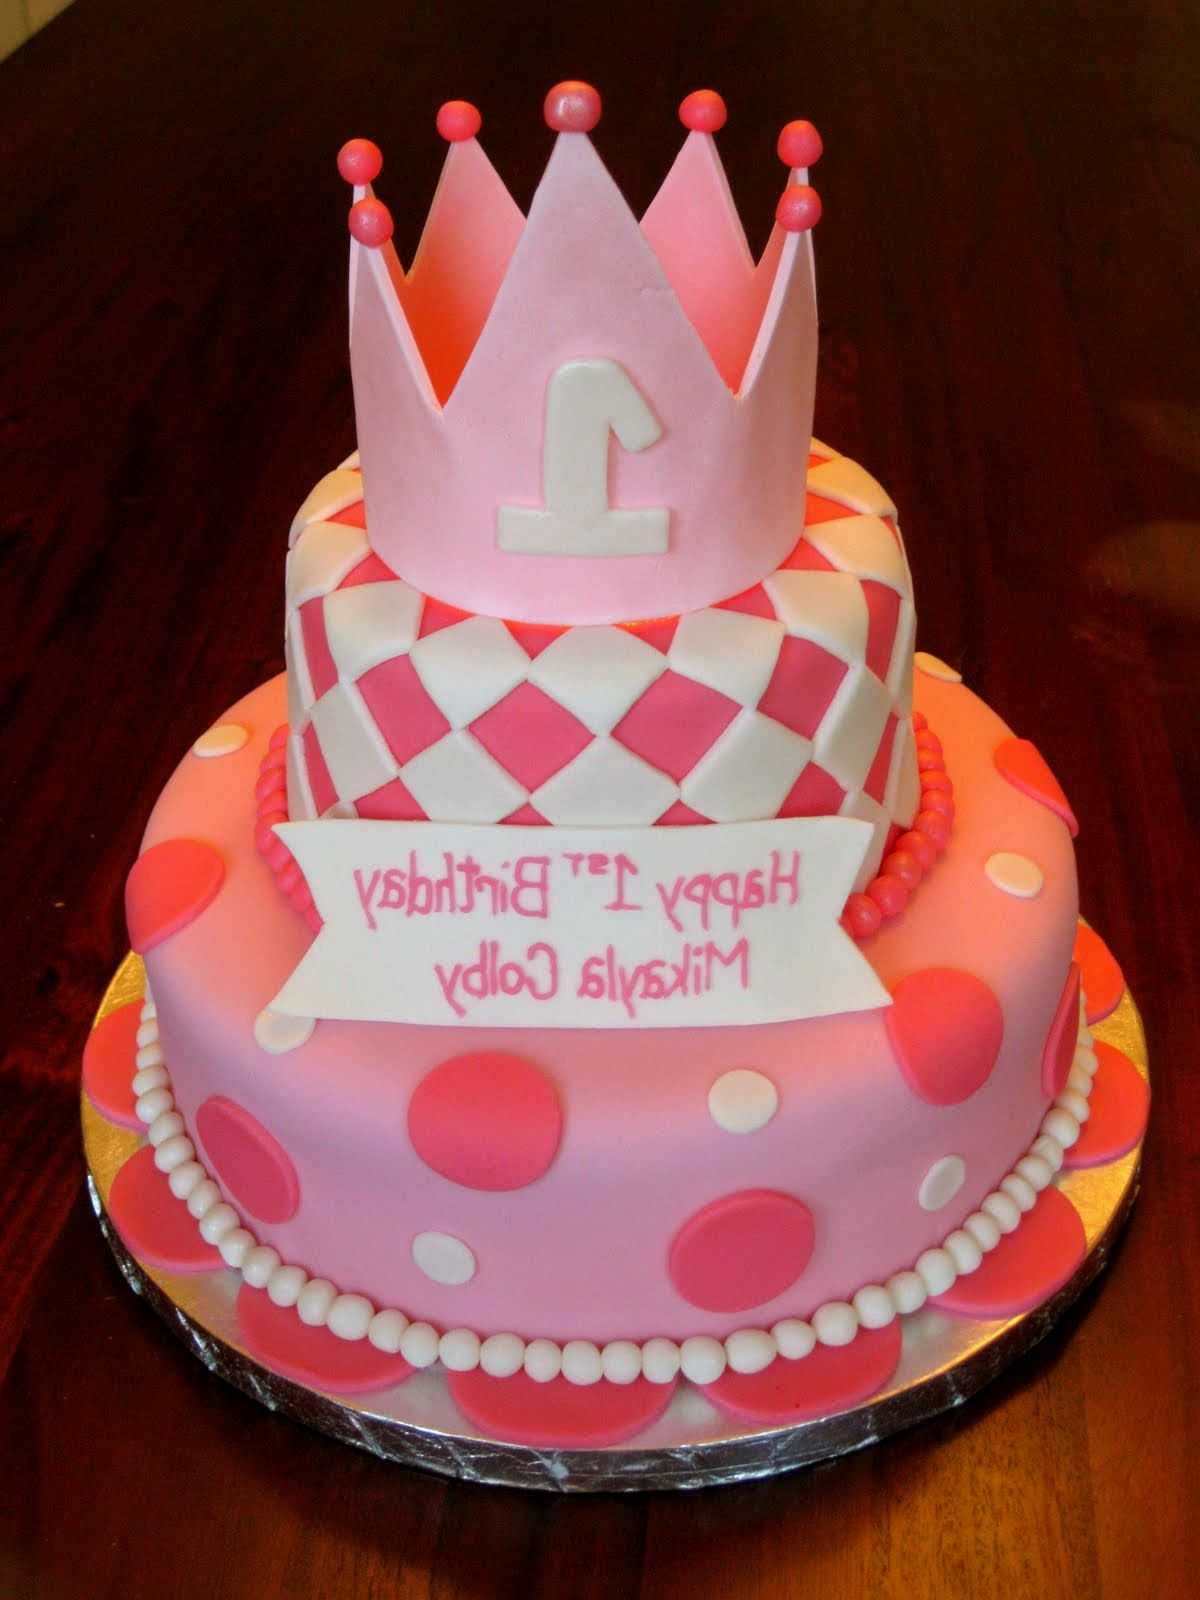 Incredible 11 One Year Old Girl Birthday Cakes For Baby Photo 1 Year Old Funny Birthday Cards Online Necthendildamsfinfo